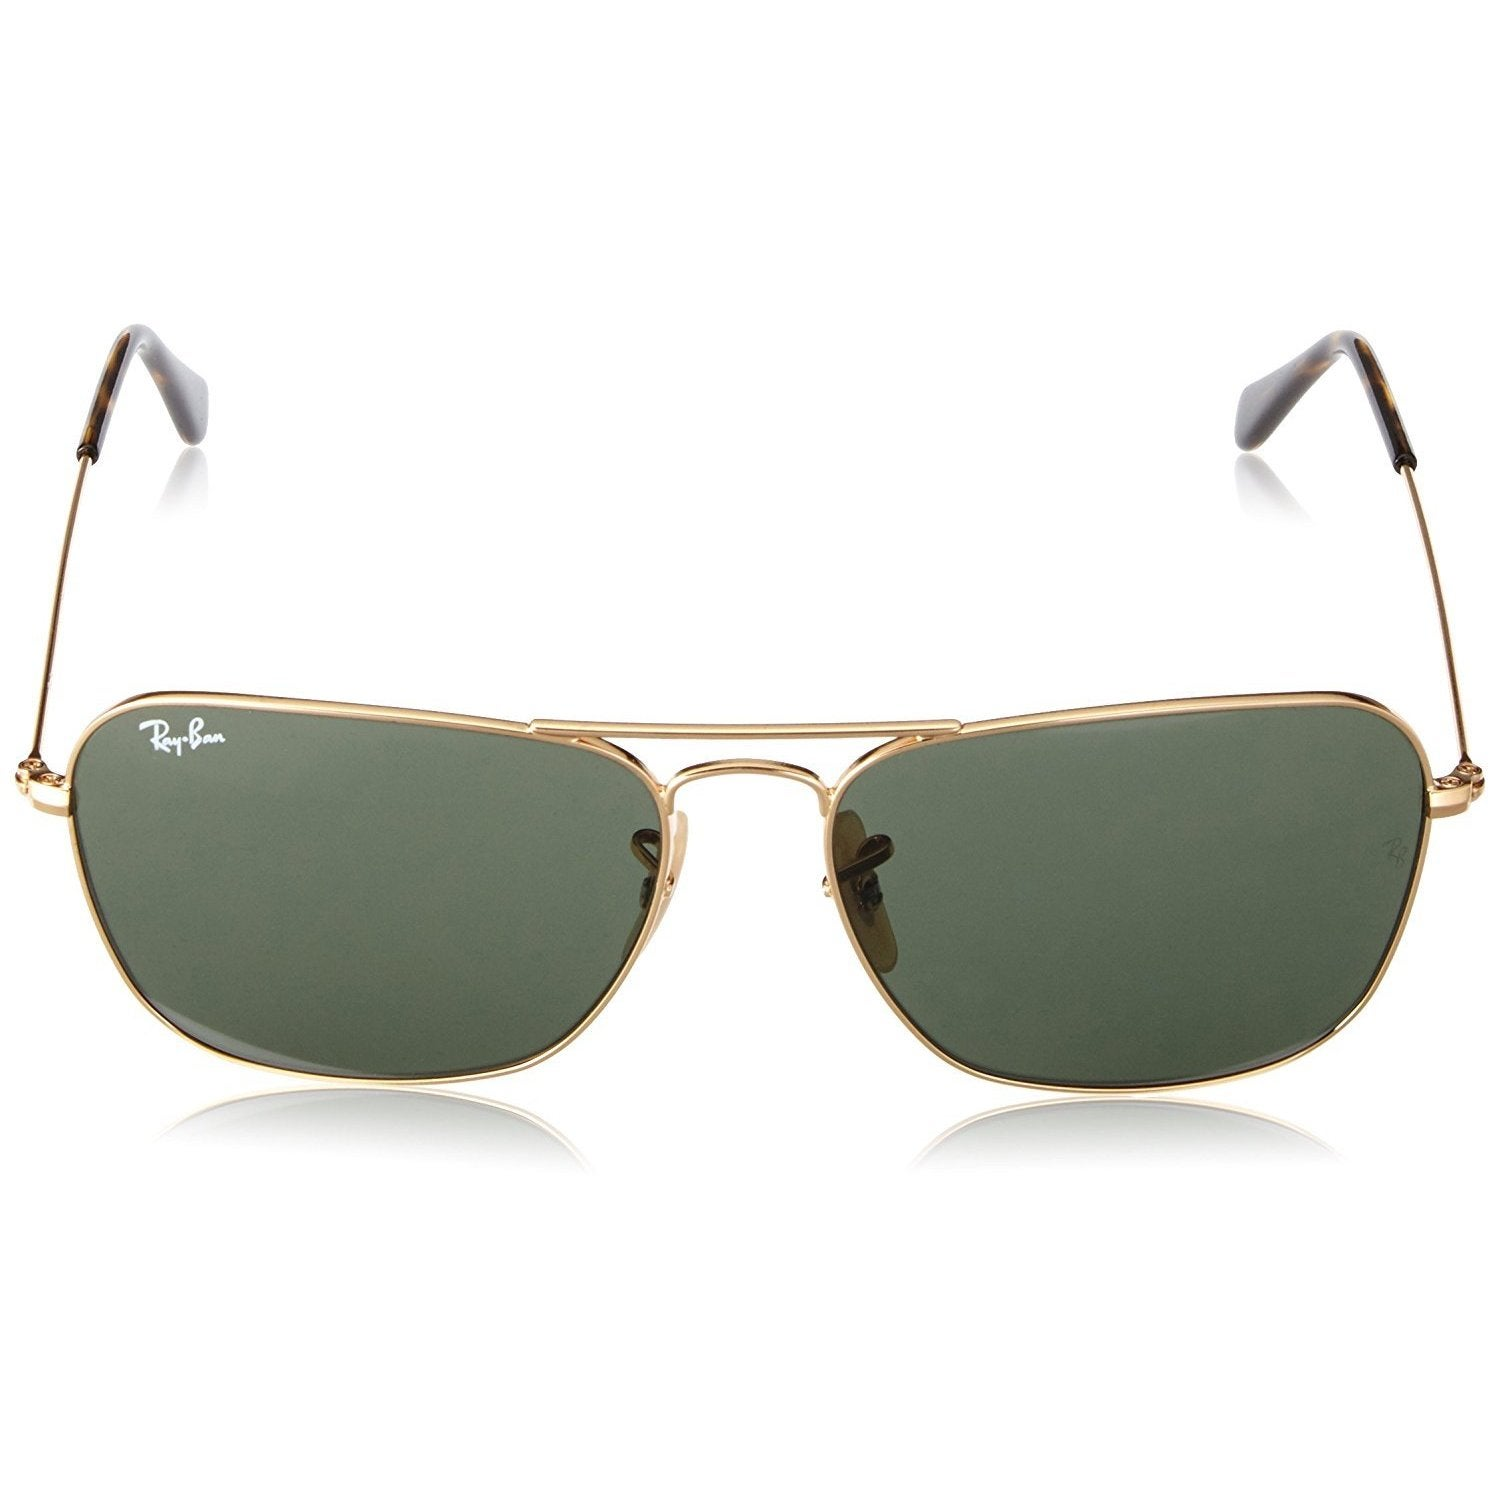 c14eb96462 Shop Ray-Ban Caravan RB3136 181 Unisex Gold Frame Green Classic 58mm Lens  Sunglasses - Free Shipping Today - Overstock.com - 14988796